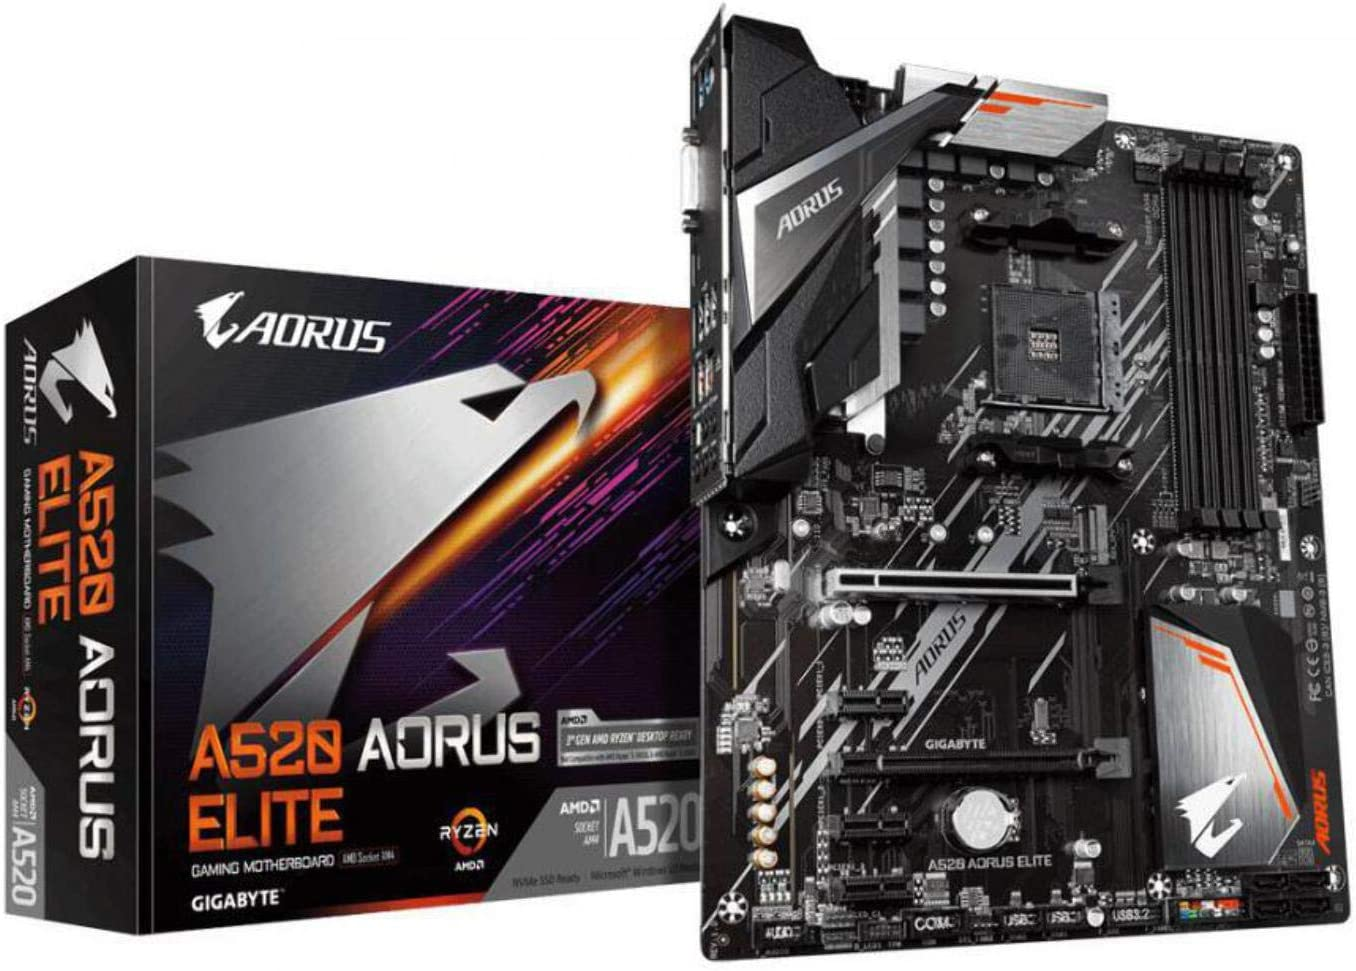 GIGABYTE A520 AORUS ELITE ATX Motherboard for AMD AM4 CPUs